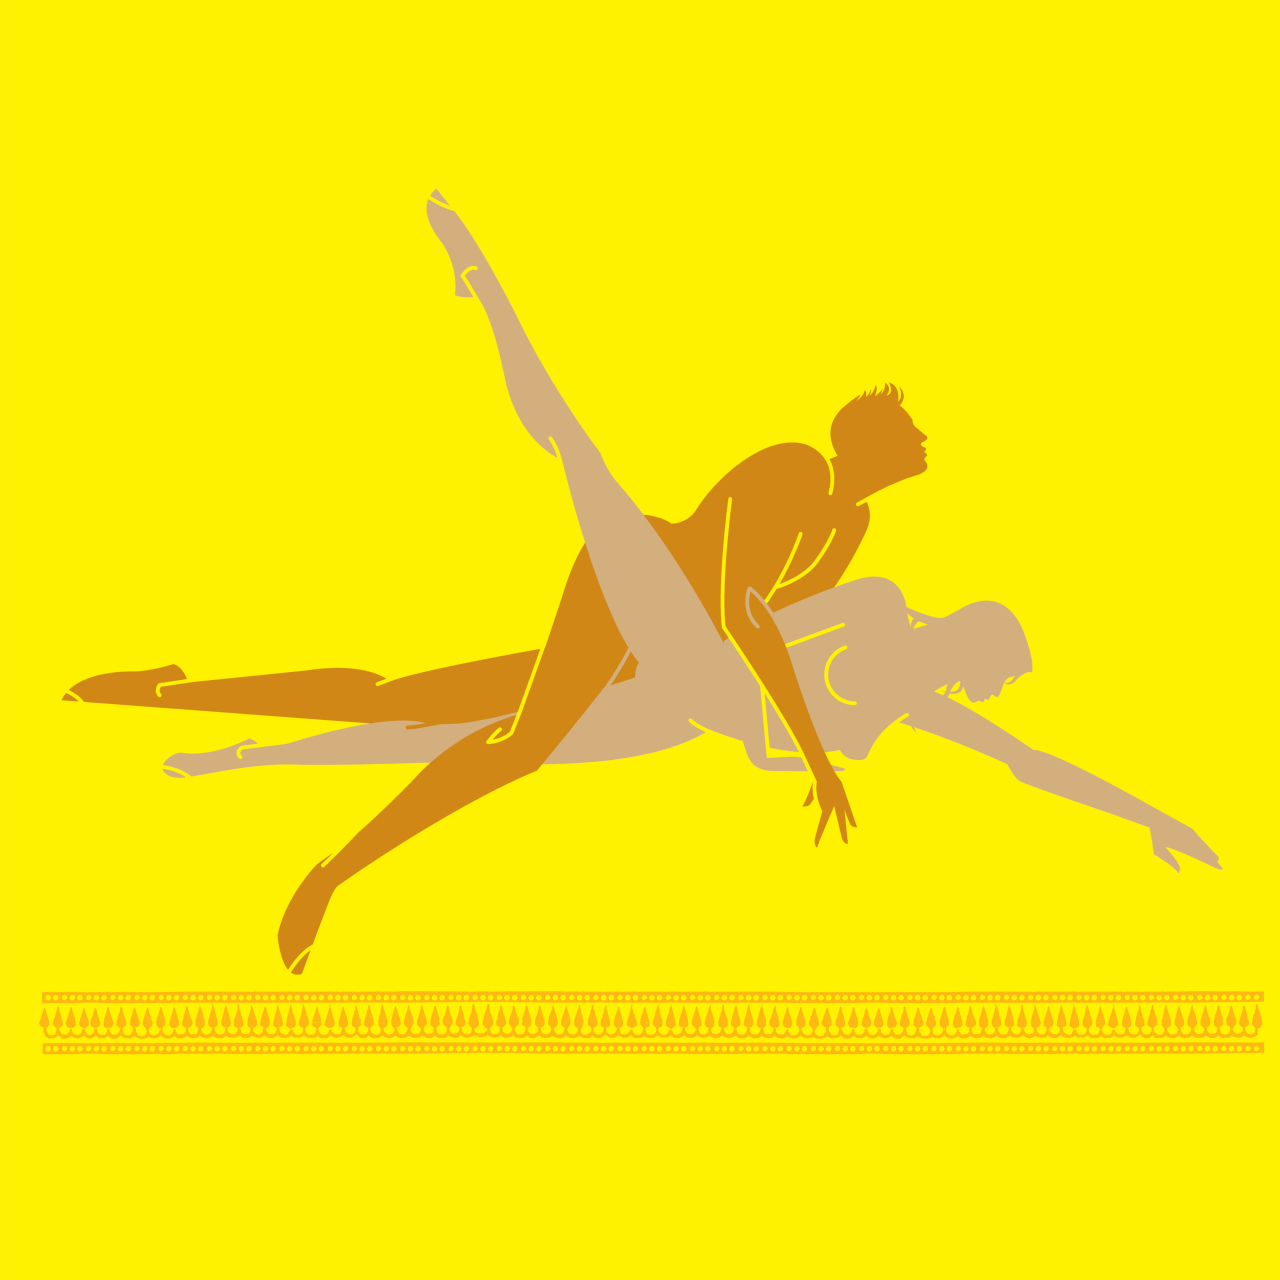 Kama sutra dragon position 1